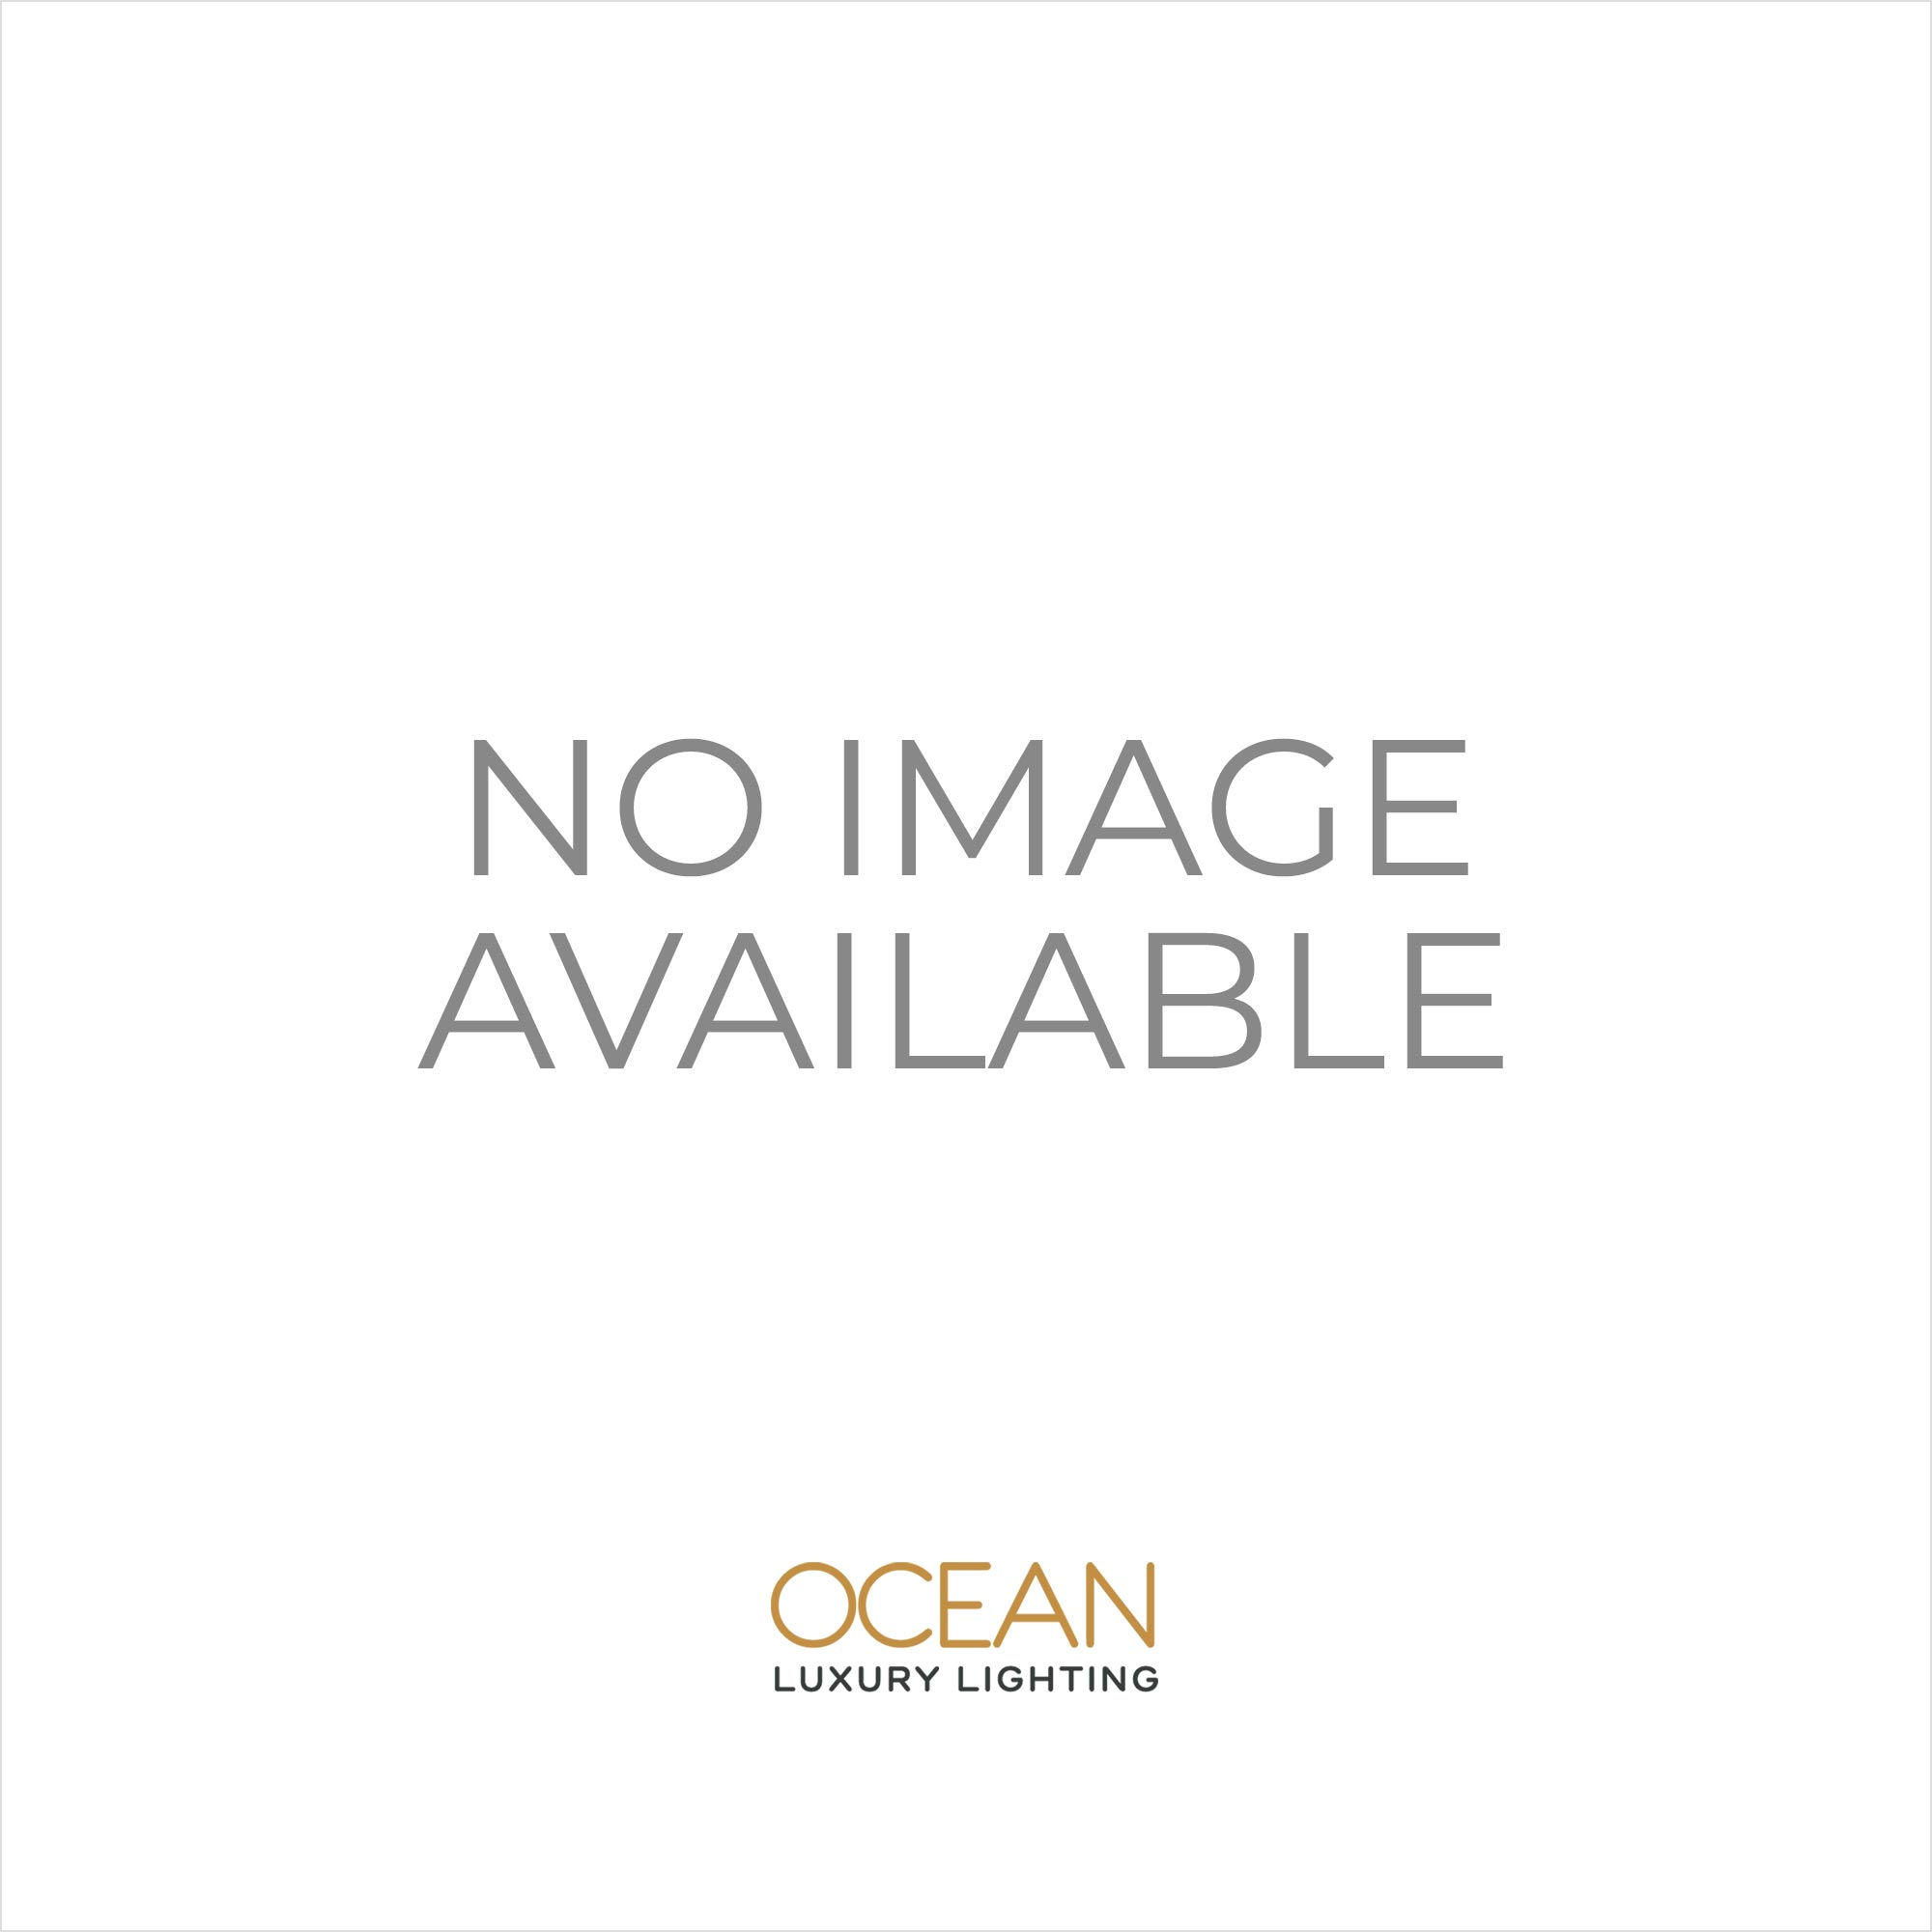 OCE98 Ocean 8 light low voltage modern bathroom mirror light IP21 rated shaver socket switched large